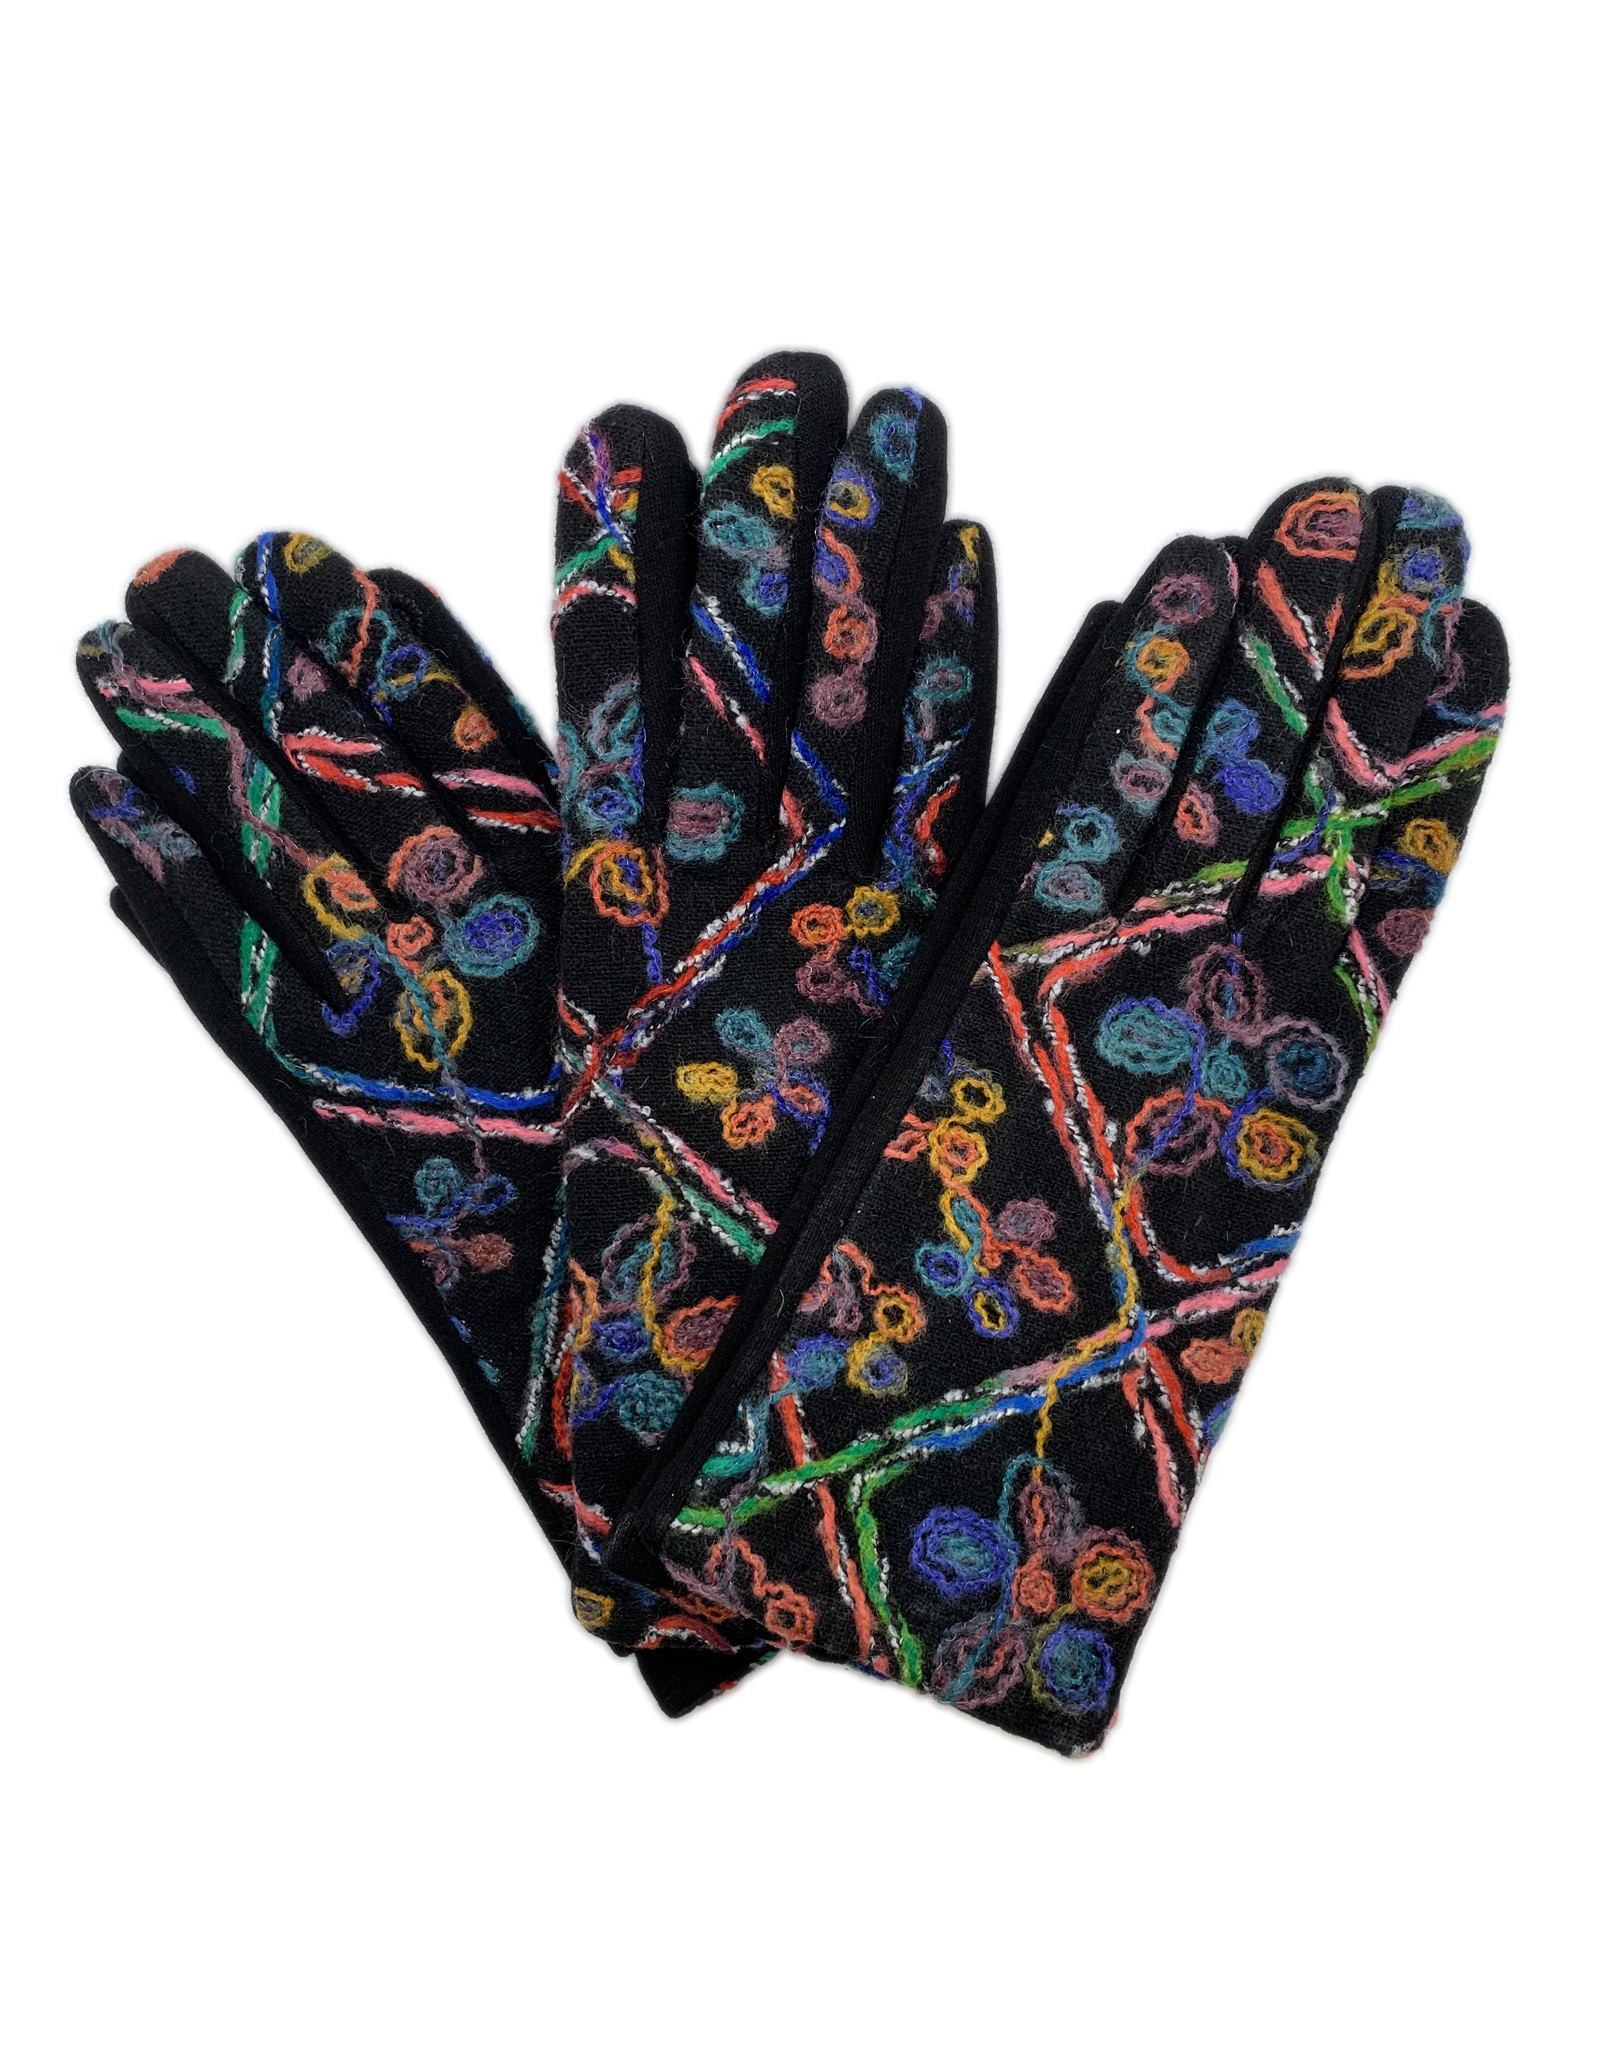 Gloves with Yarn Embroidered Floral Design